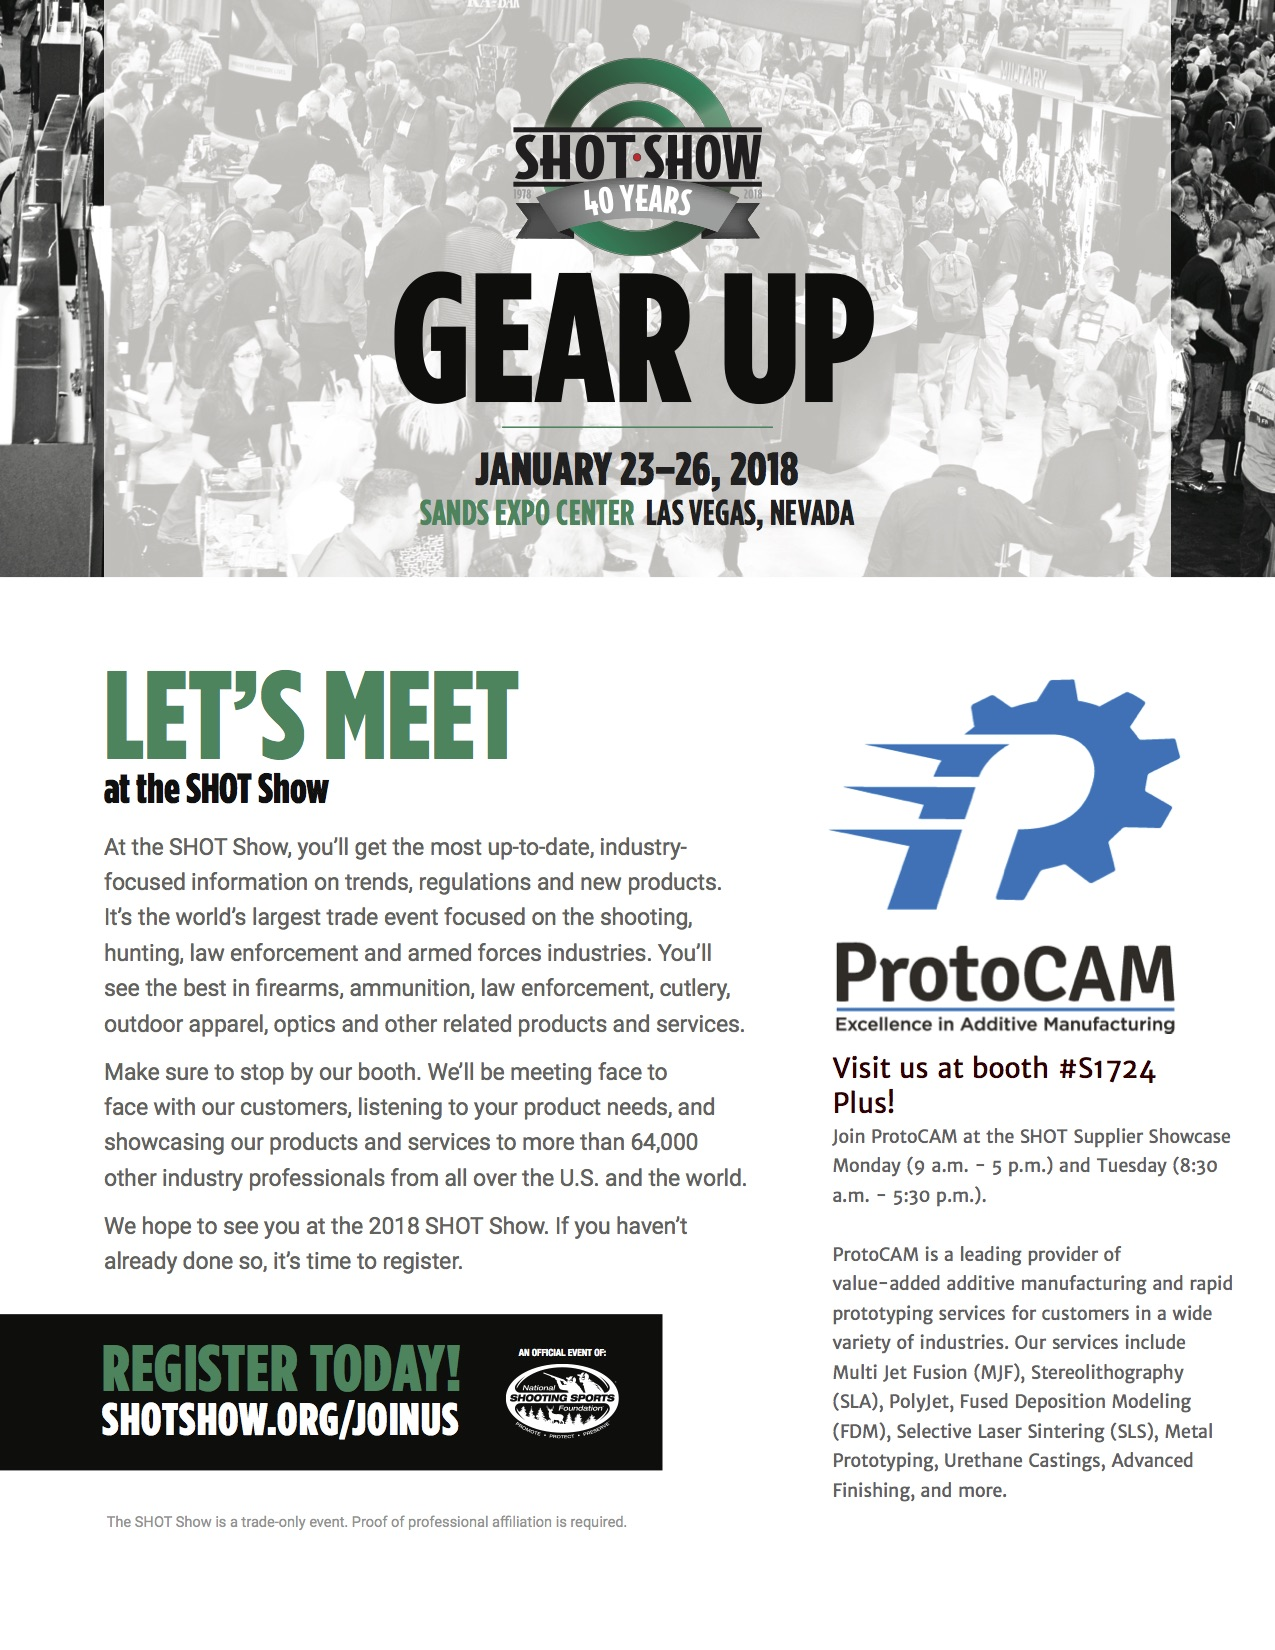 SHOTSHOW Flyer ProtoCAM